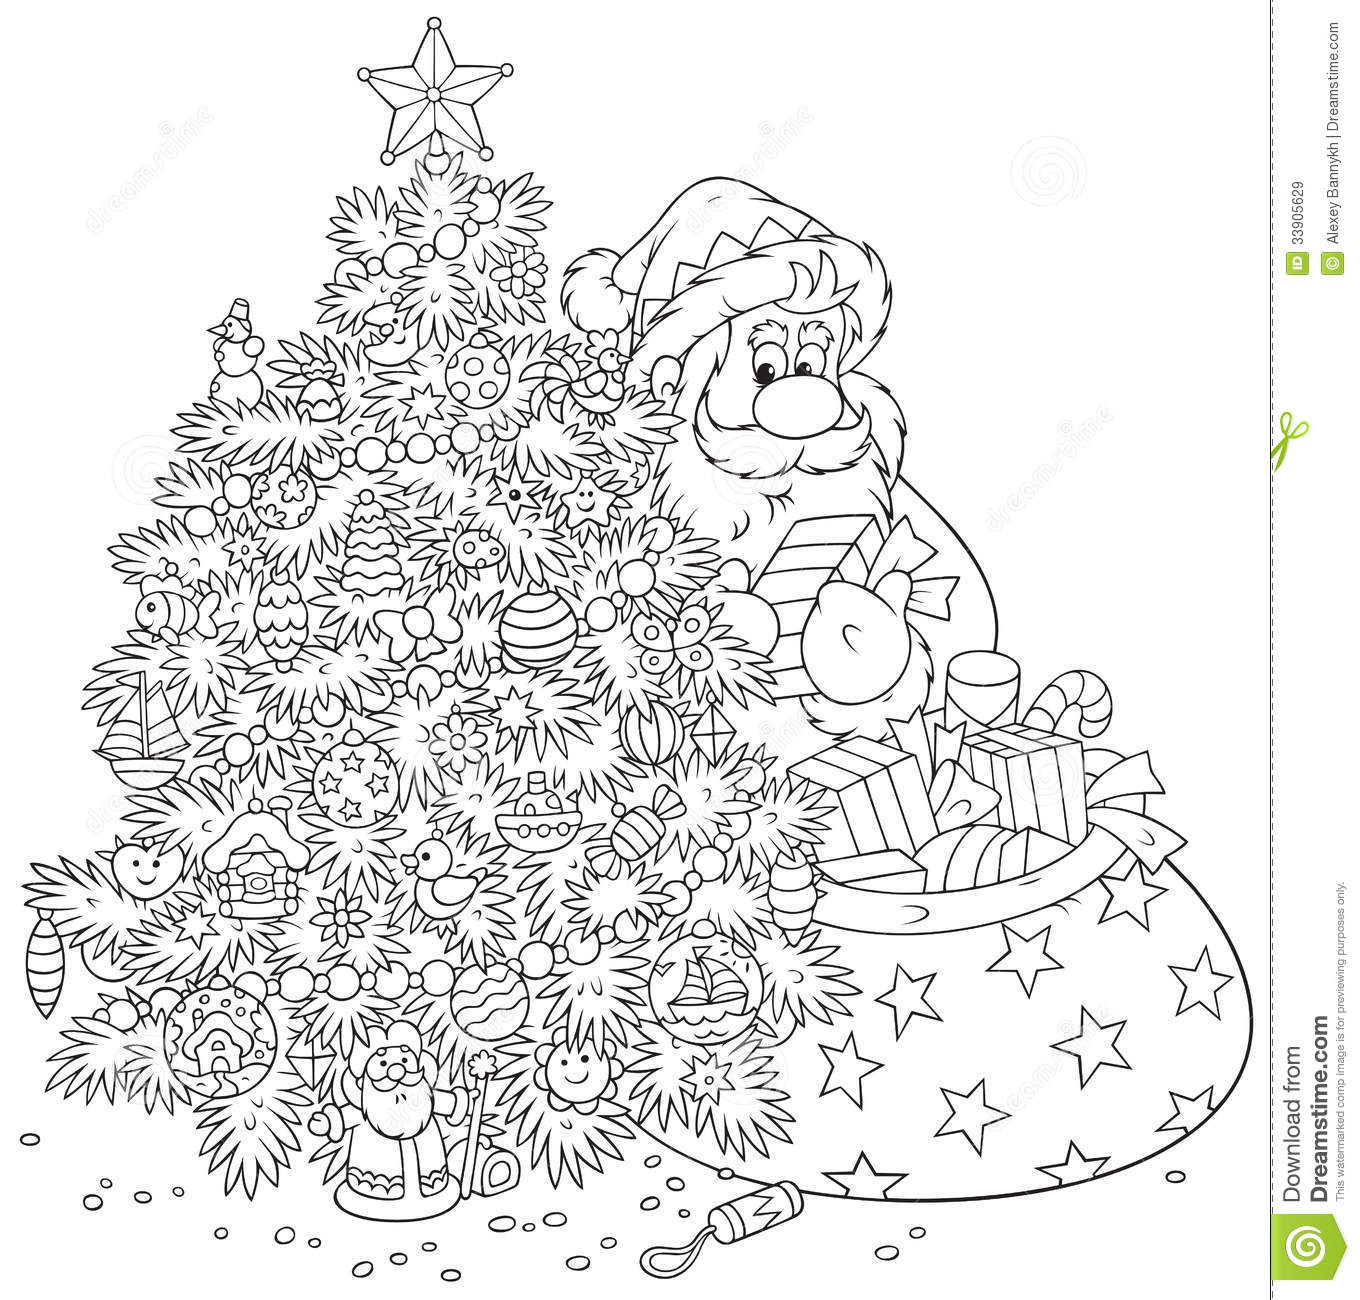 ... black-and-white outline illustration on a white background for a